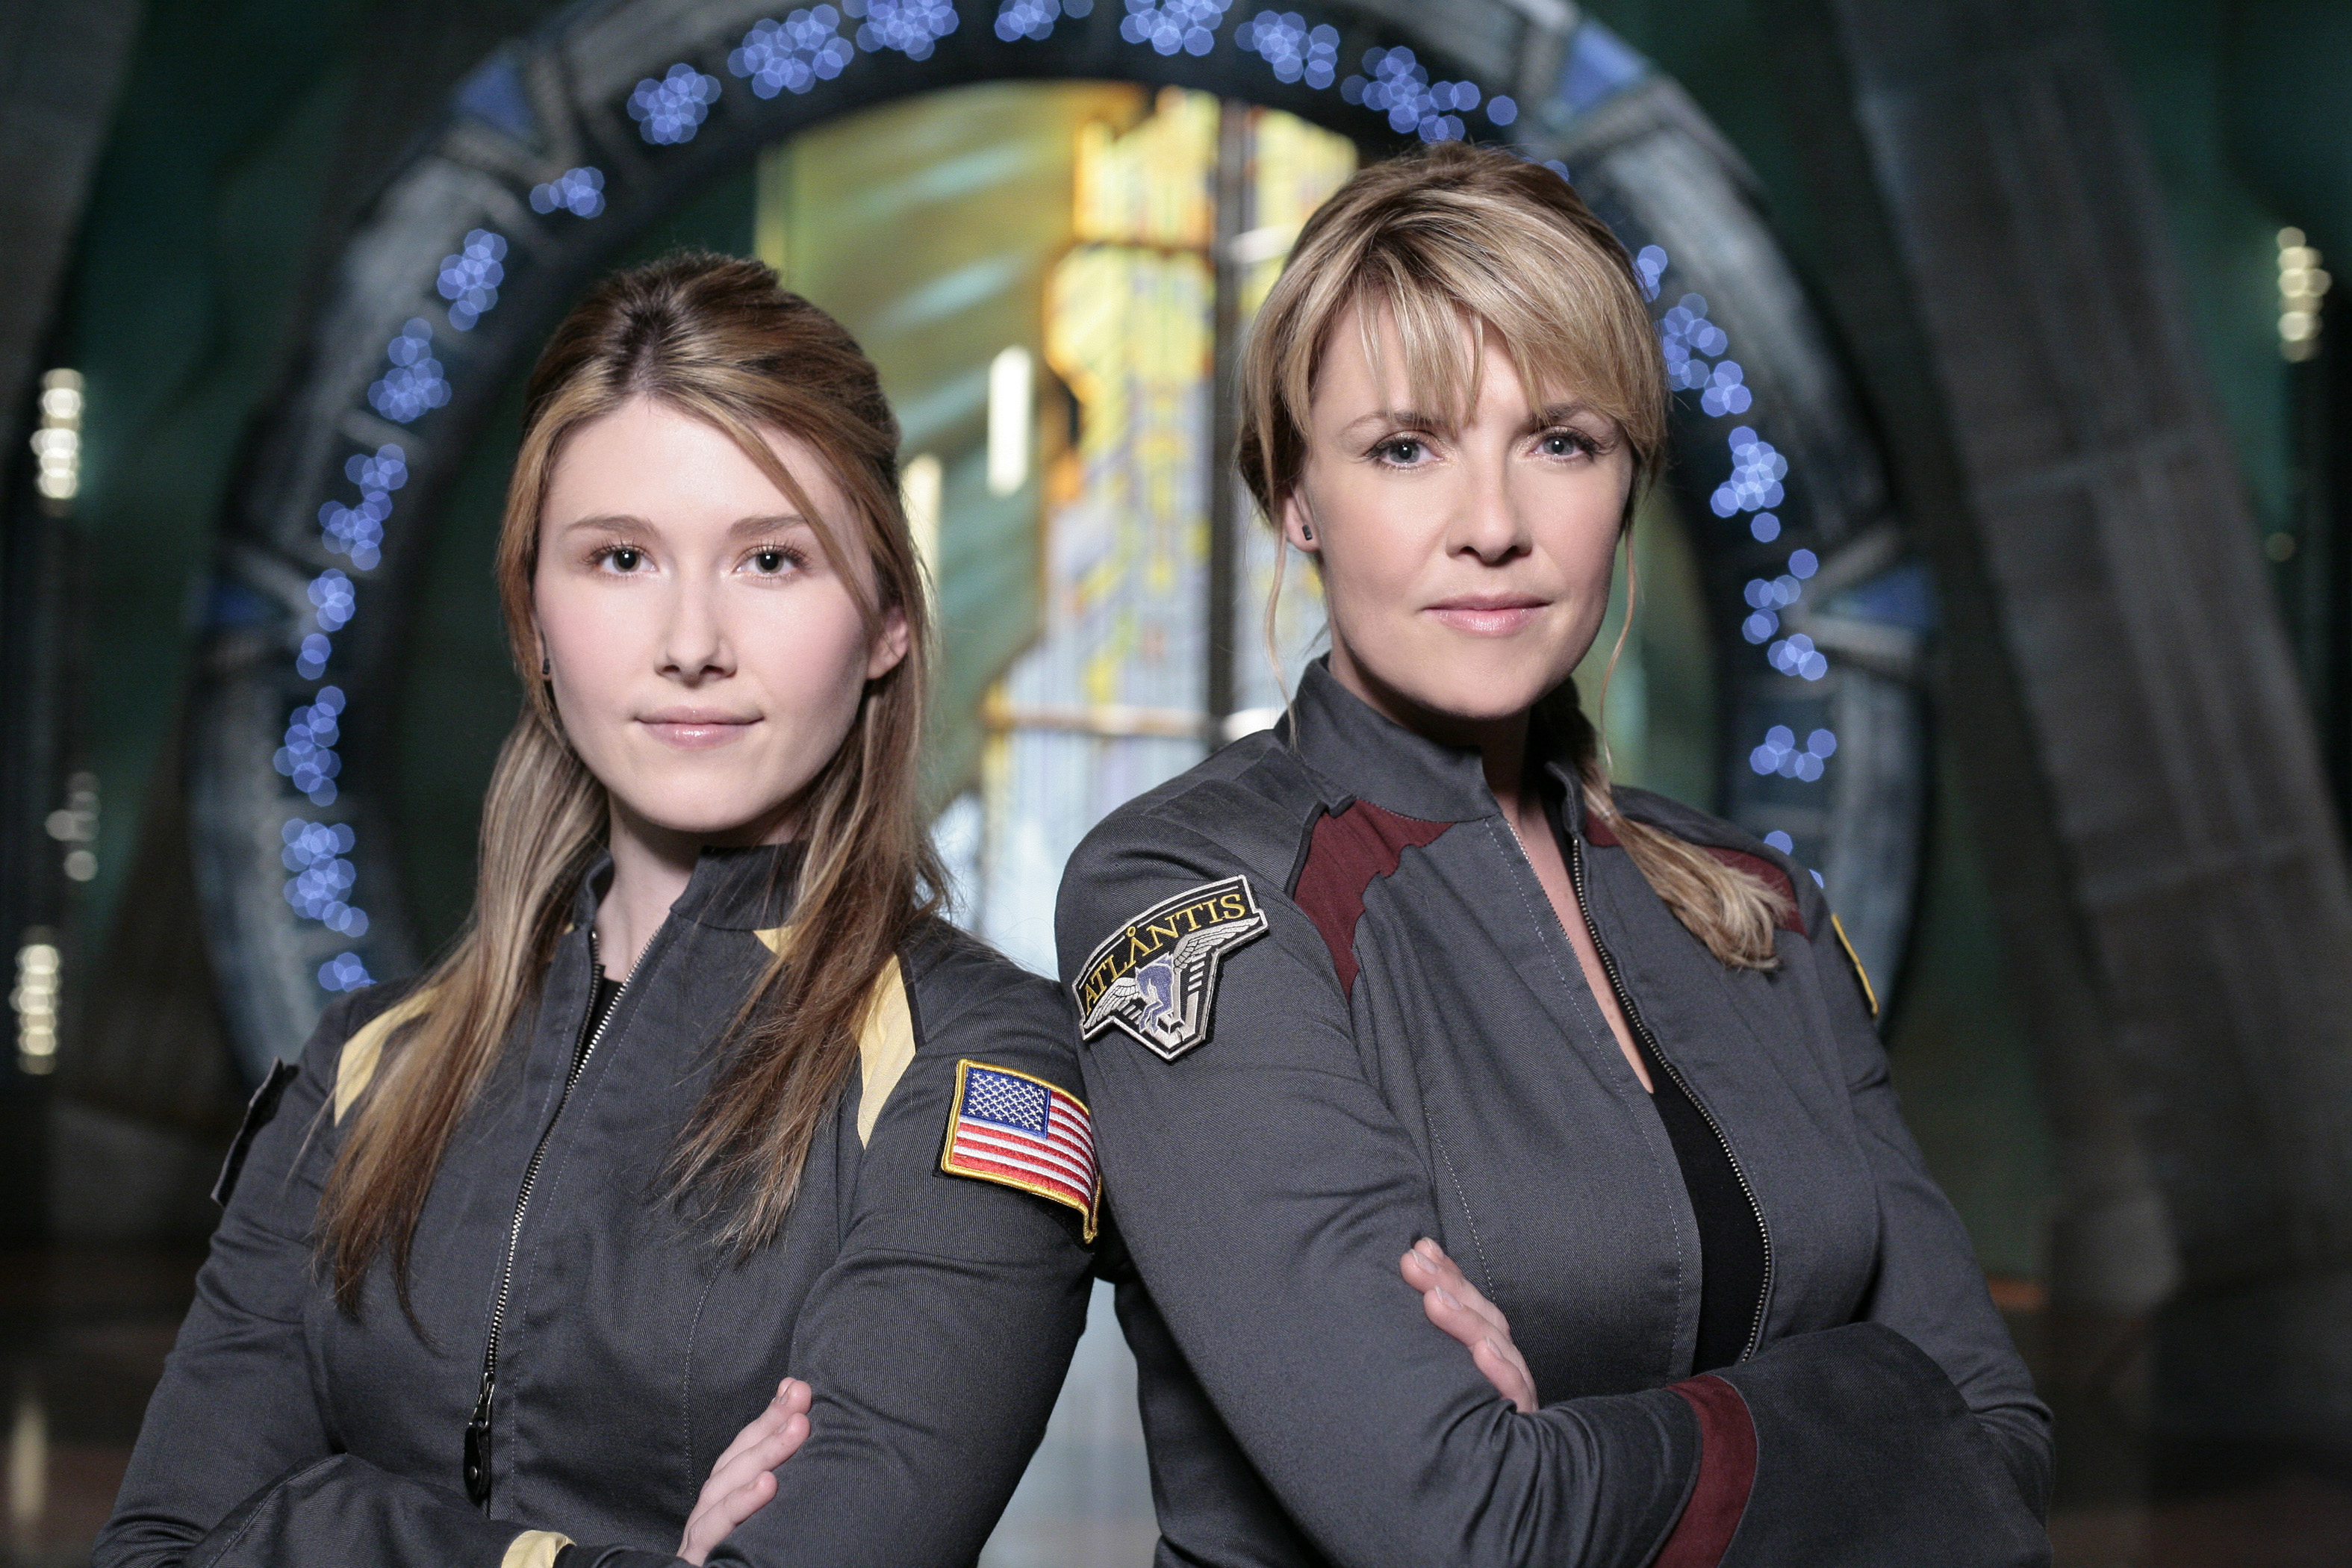 Stargate Atlantis Jewel Staite and Amanda Tapping hot